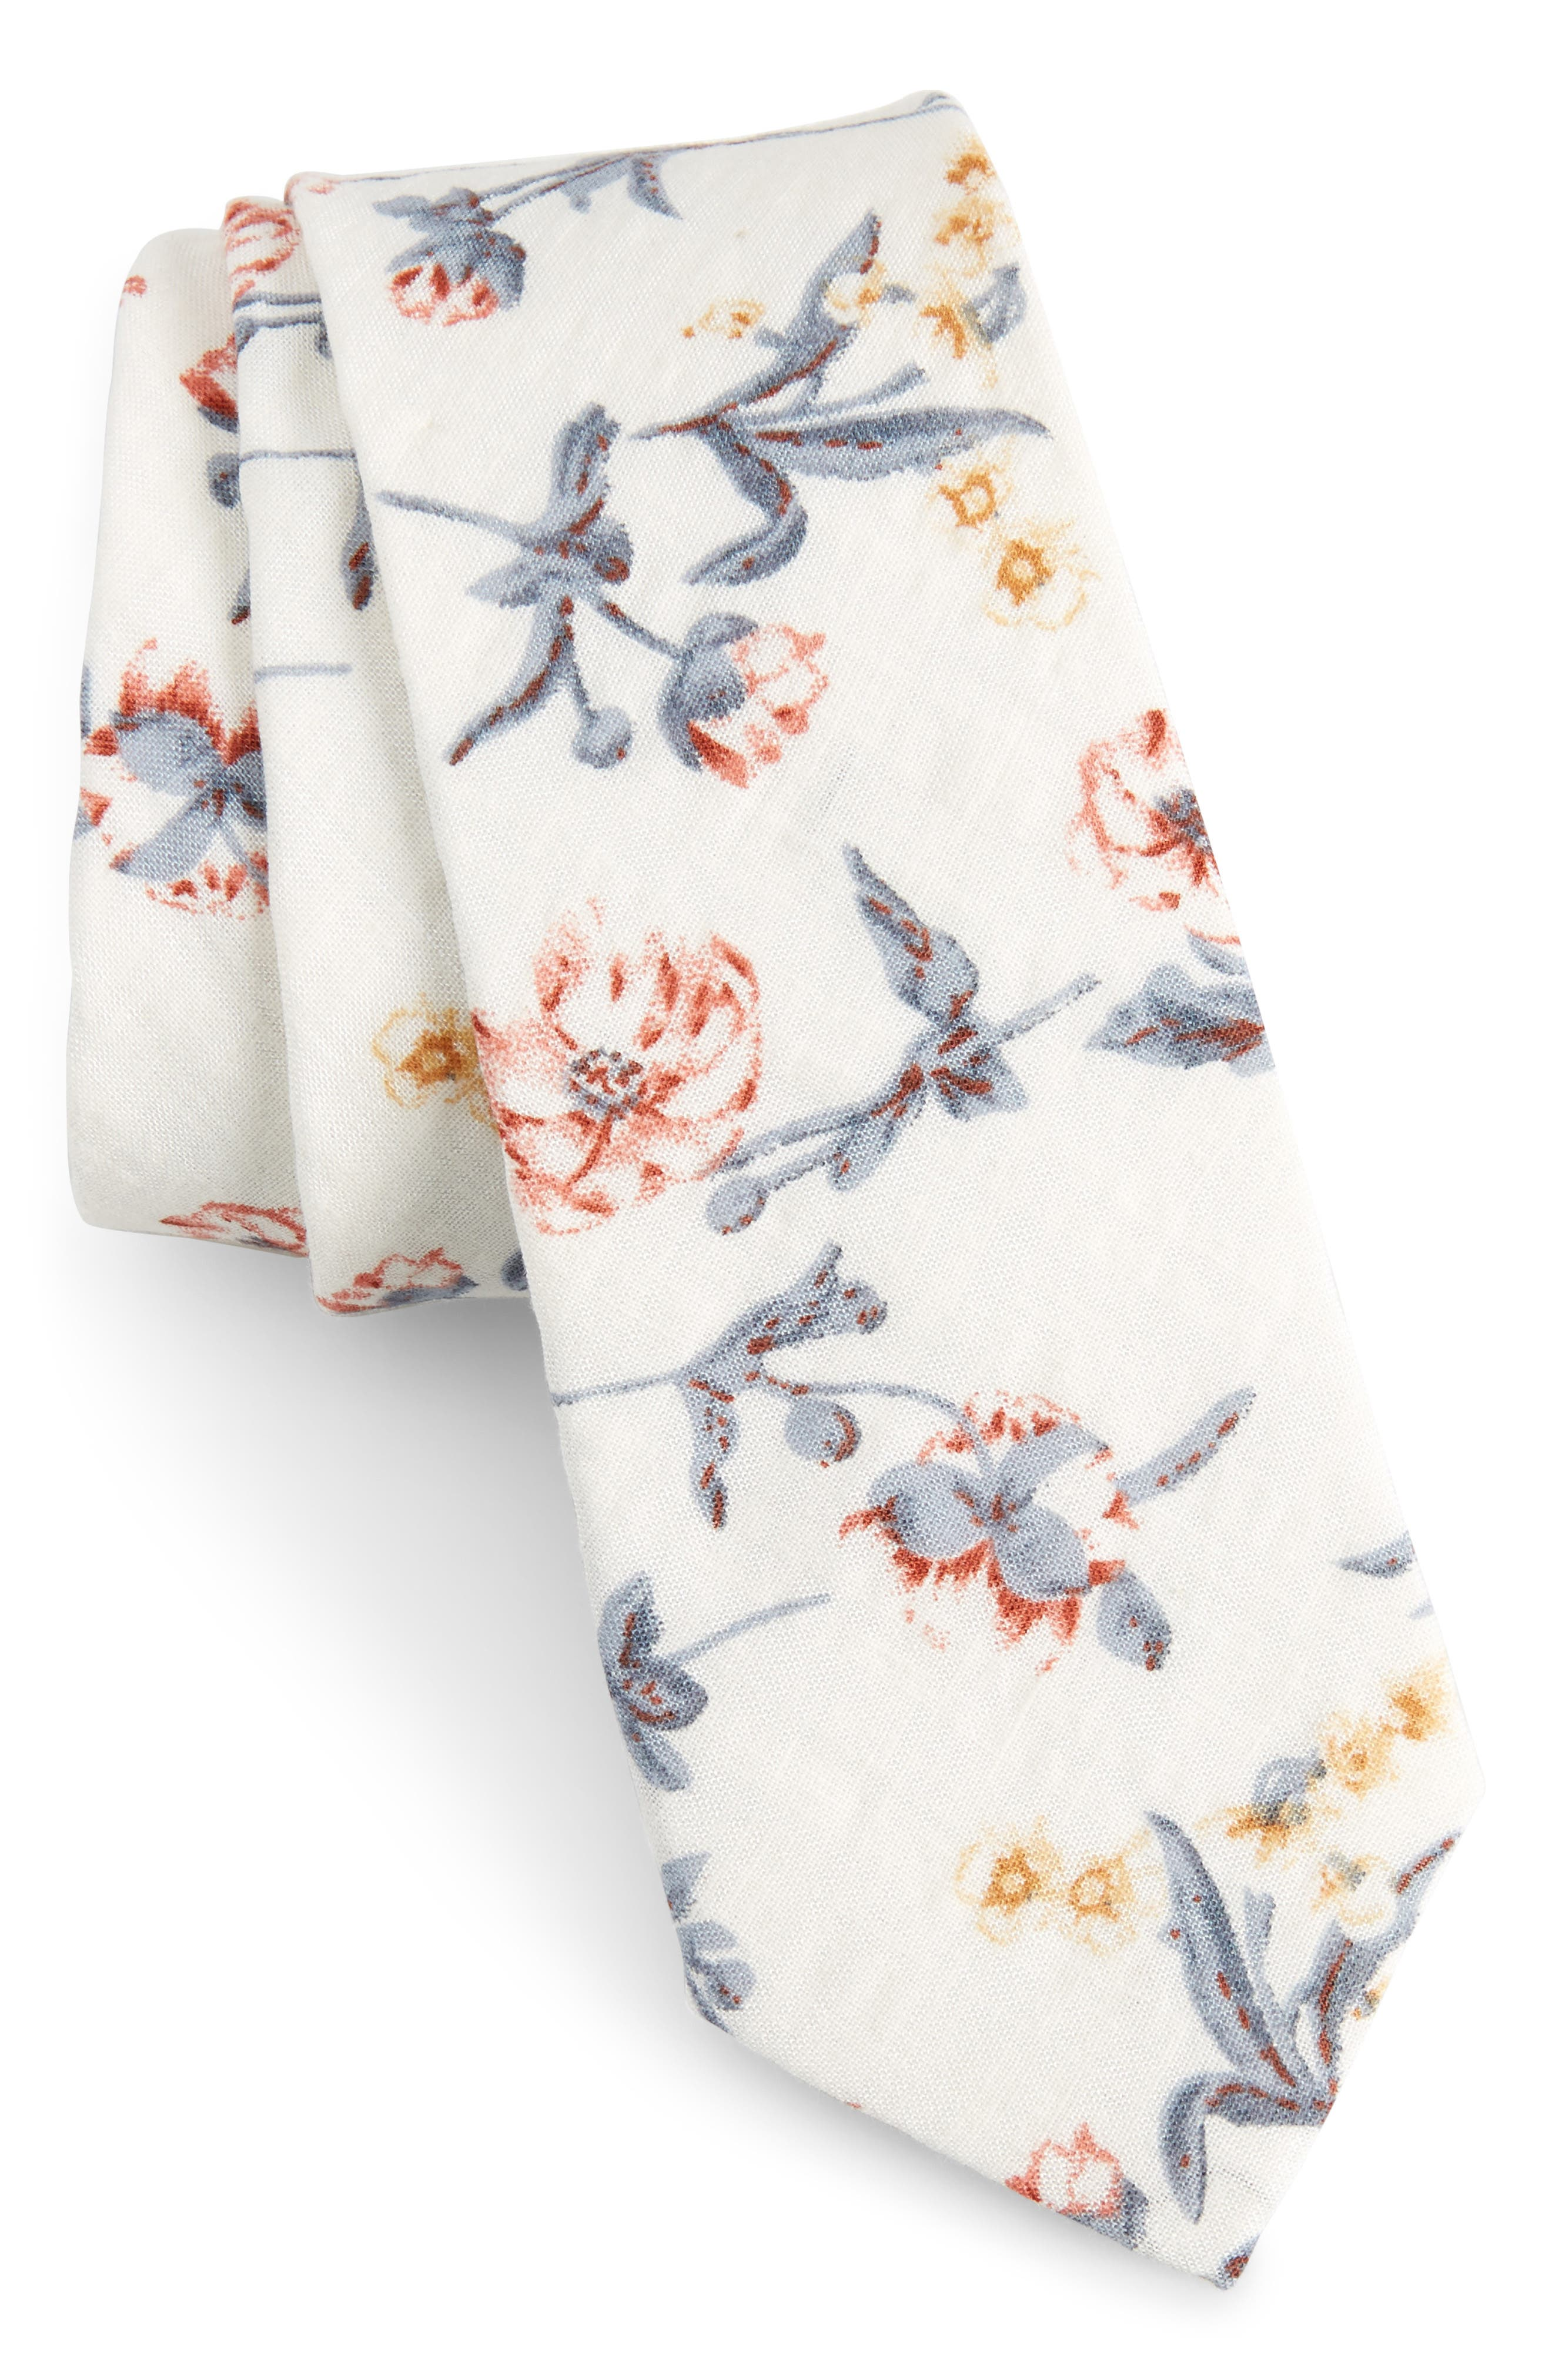 Alternate Image 1 Selected - 1901 Nunley Floral Cotton Skinny Tie